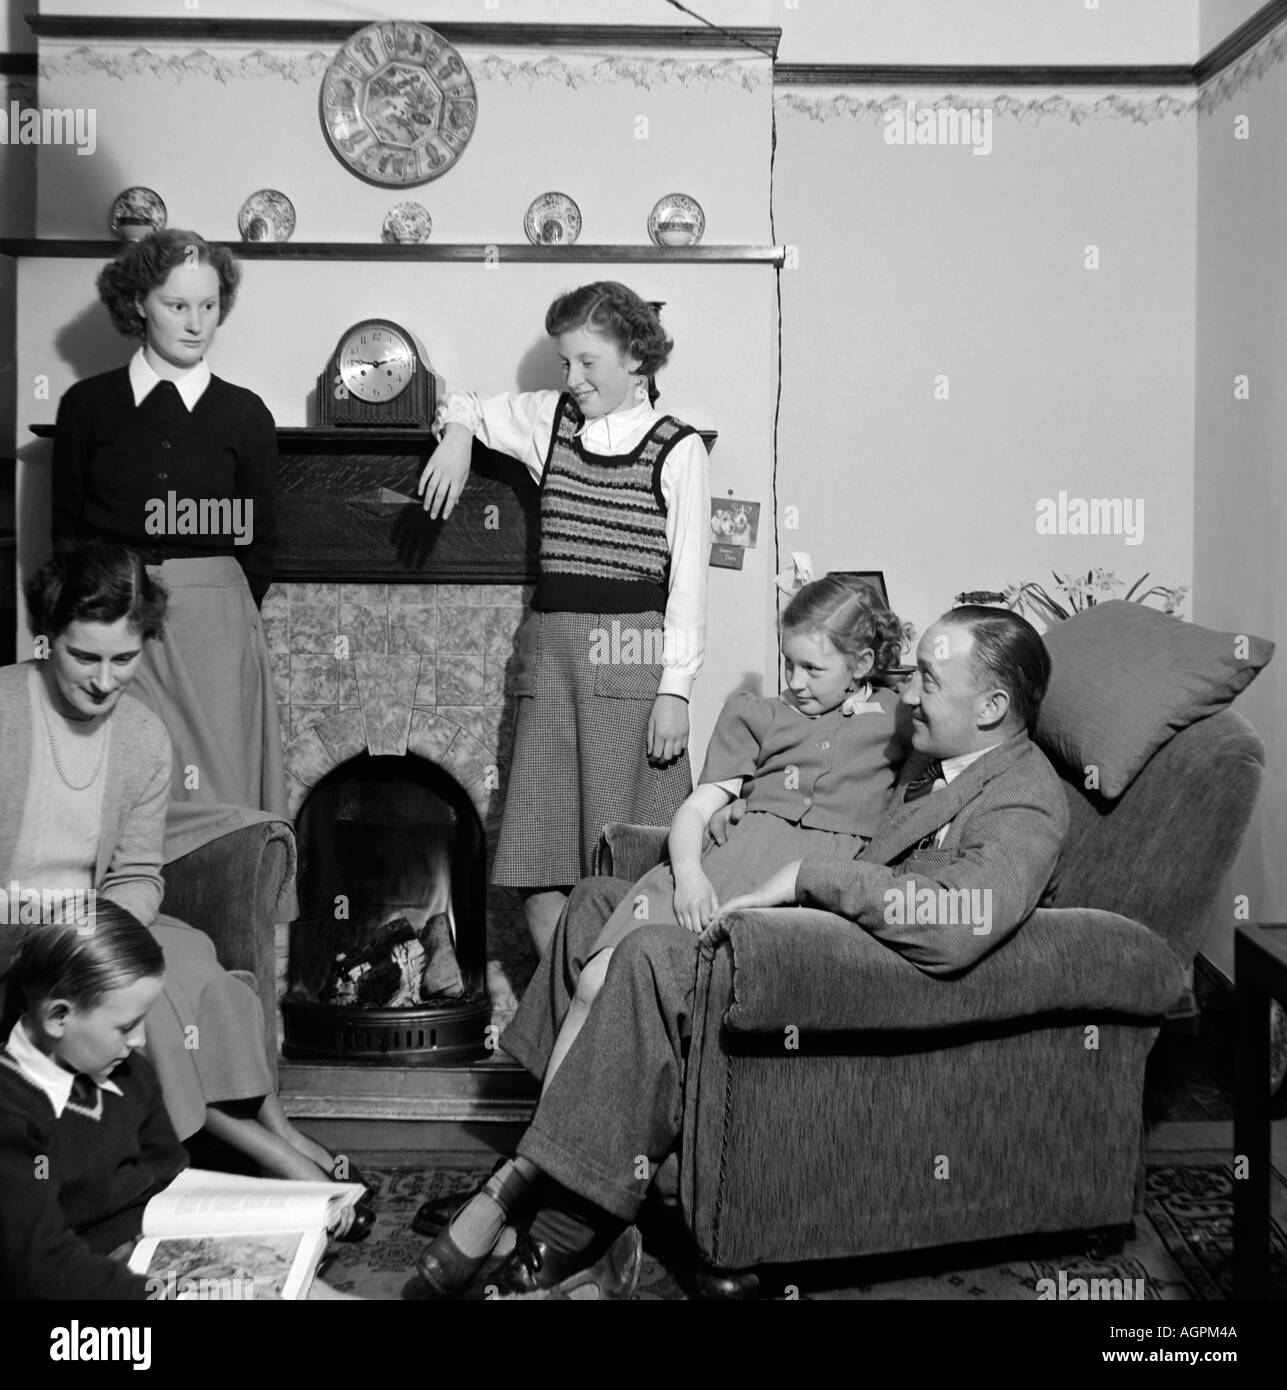 OLD VINTAGE FAMILY SNAPSHOT PHOTOGRAPH OF  MOTHER FATHER AND FOUR CHILDREN RELAXING IN LIVING ROOM OF HOUSE 1950 - Stock Image